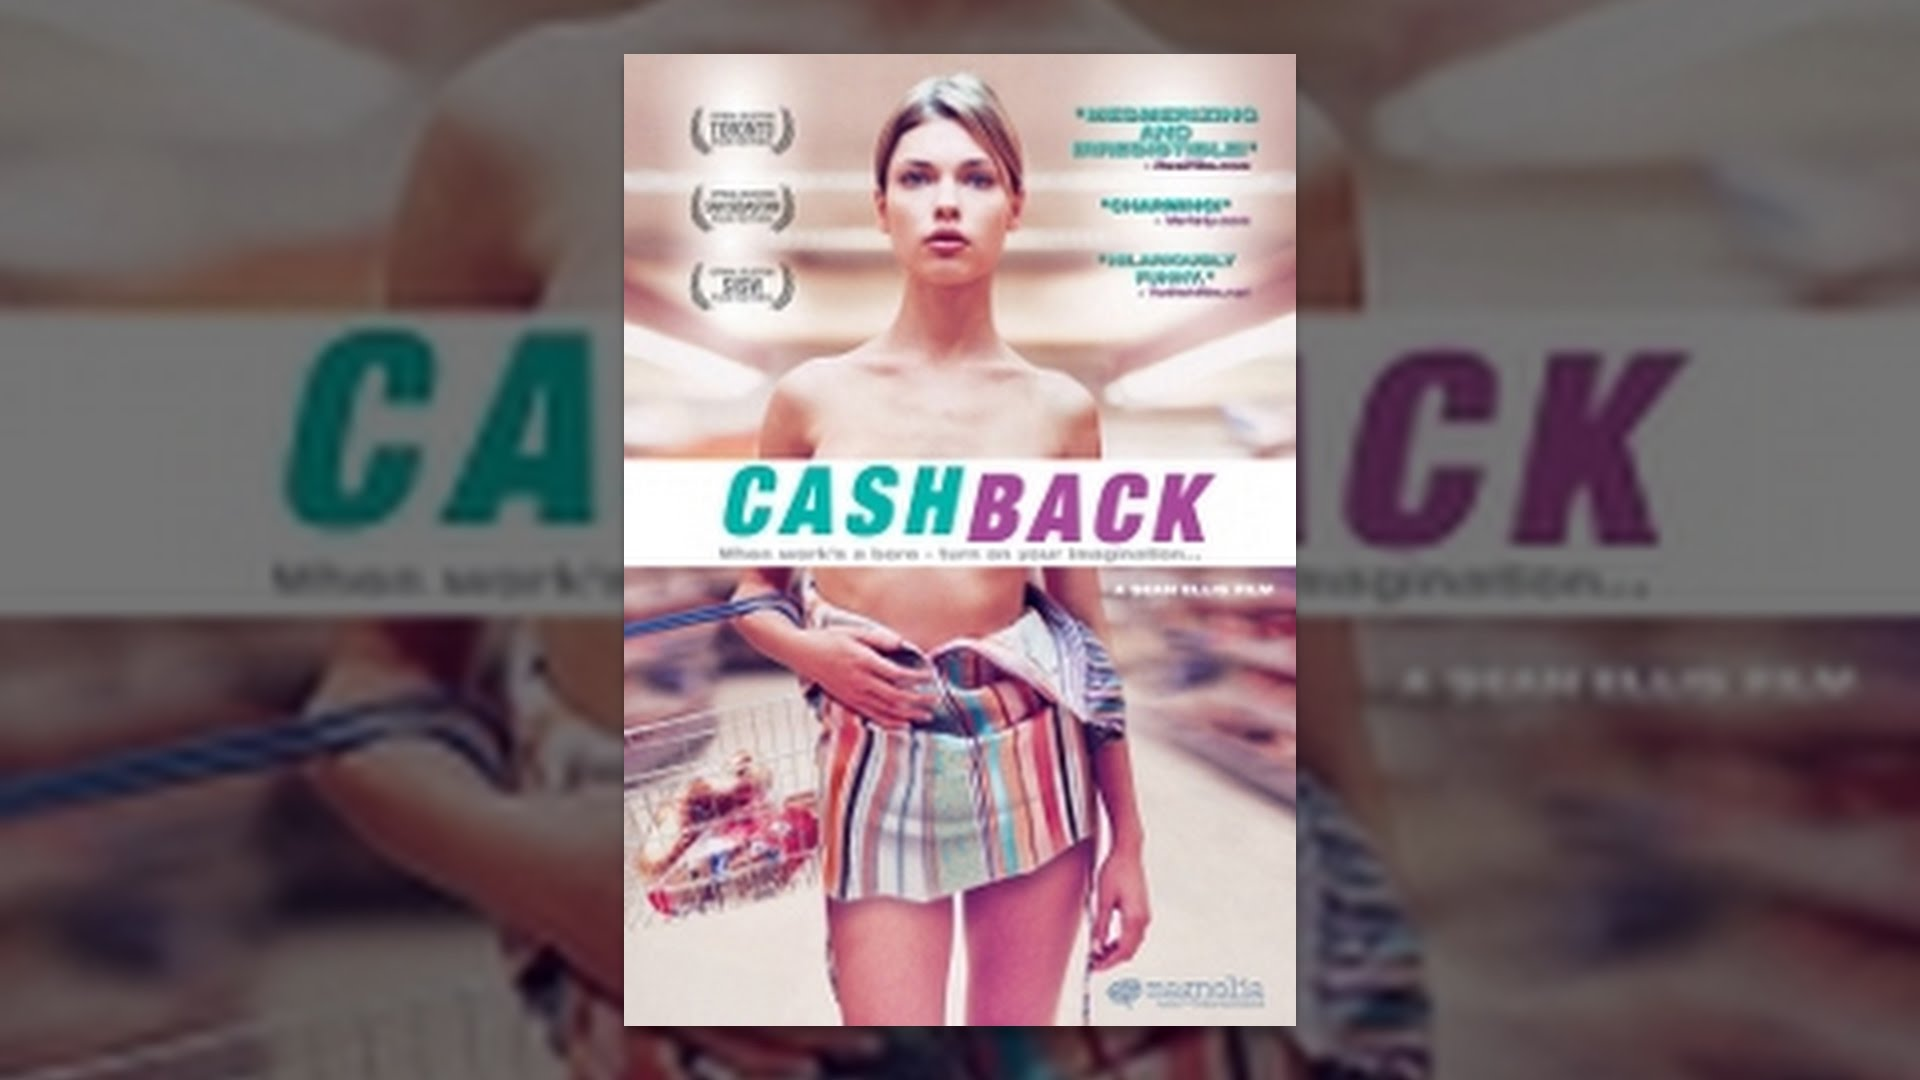 Cashback - YouTube